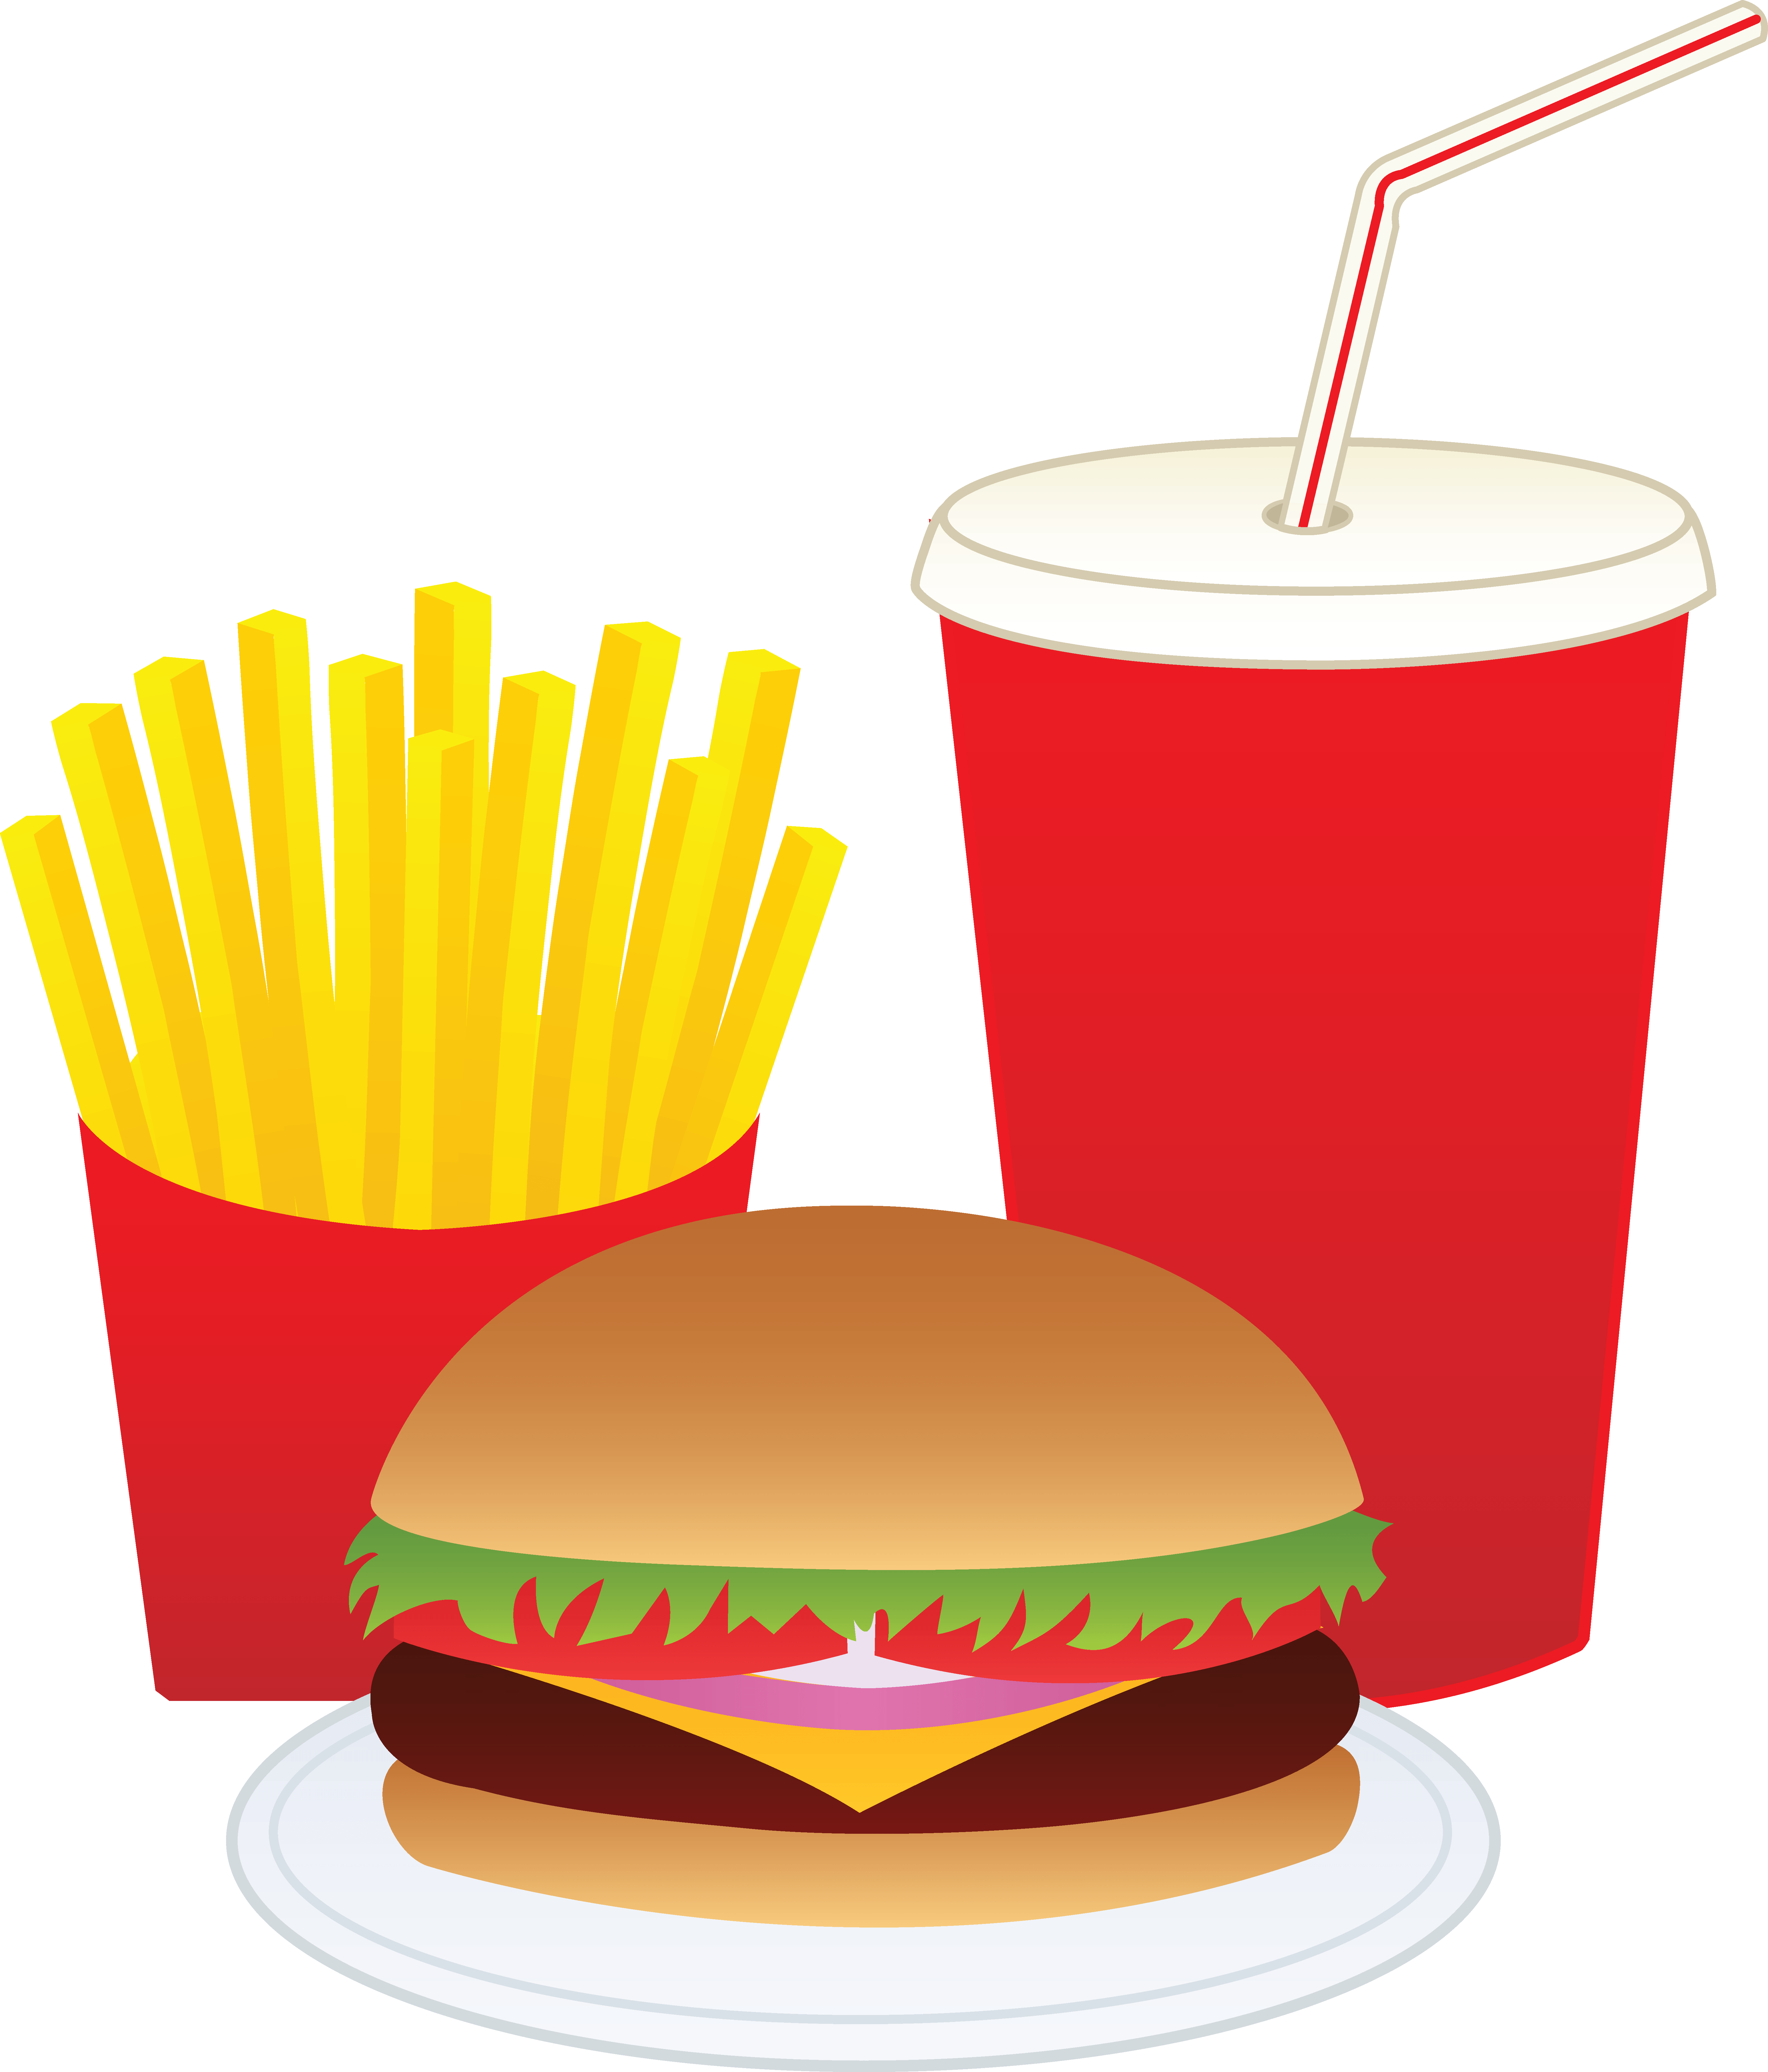 Cute hamburger and fries png. Best free wallpapers